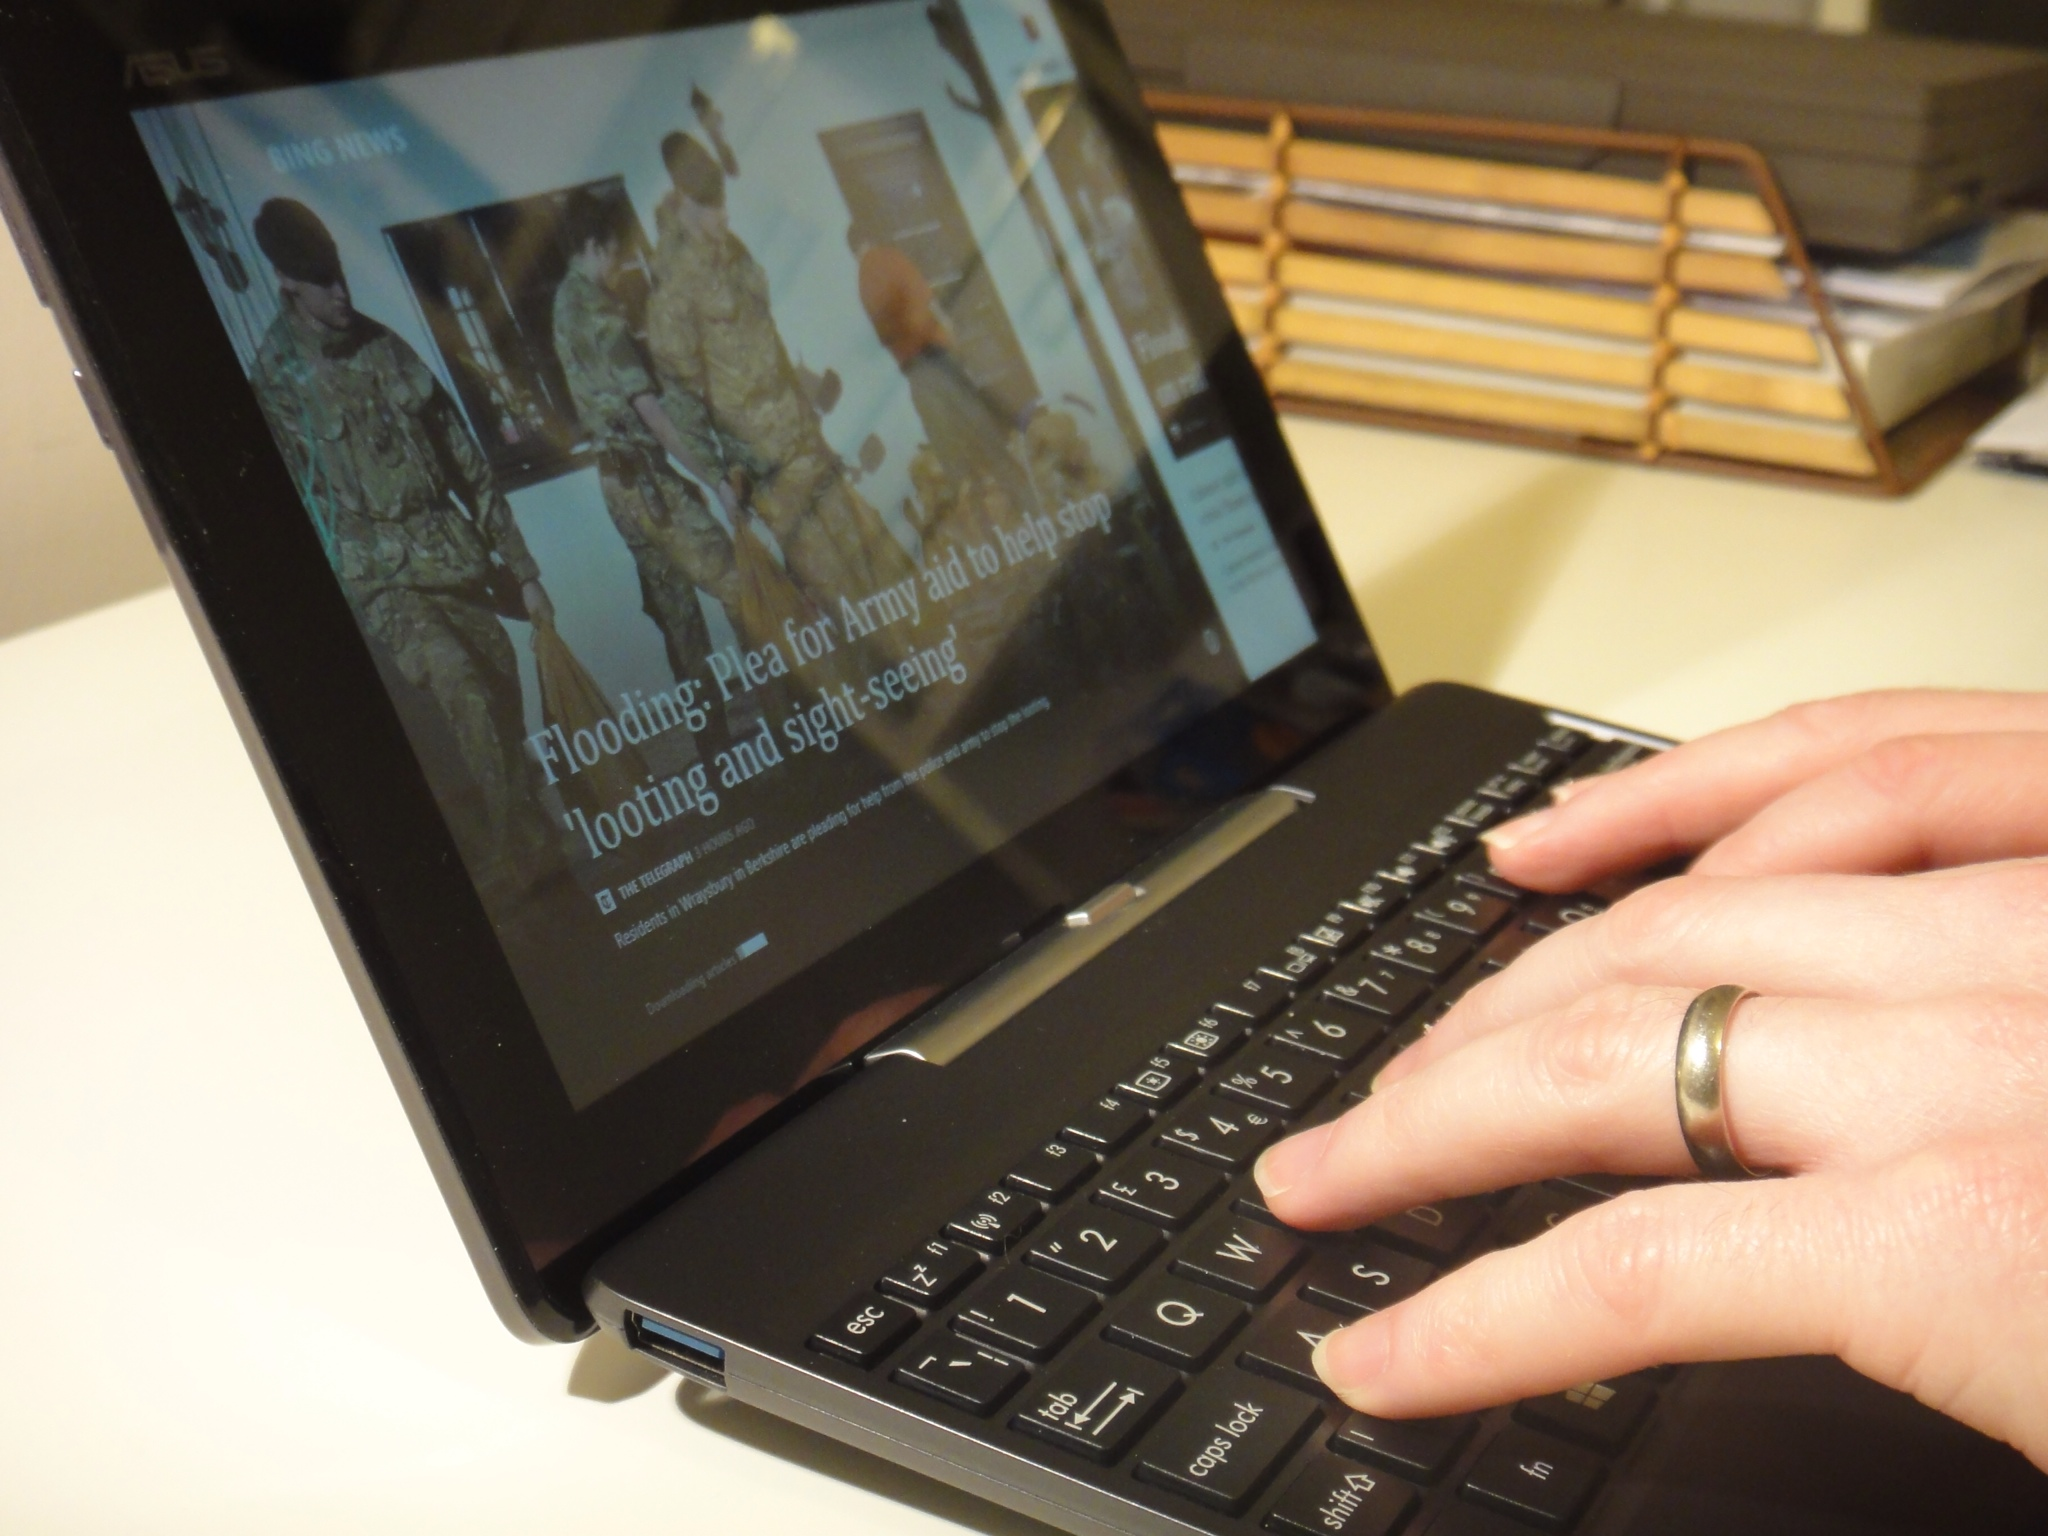 The keyboard is small, but well made and responsive. The hinge feels strong and reliable.